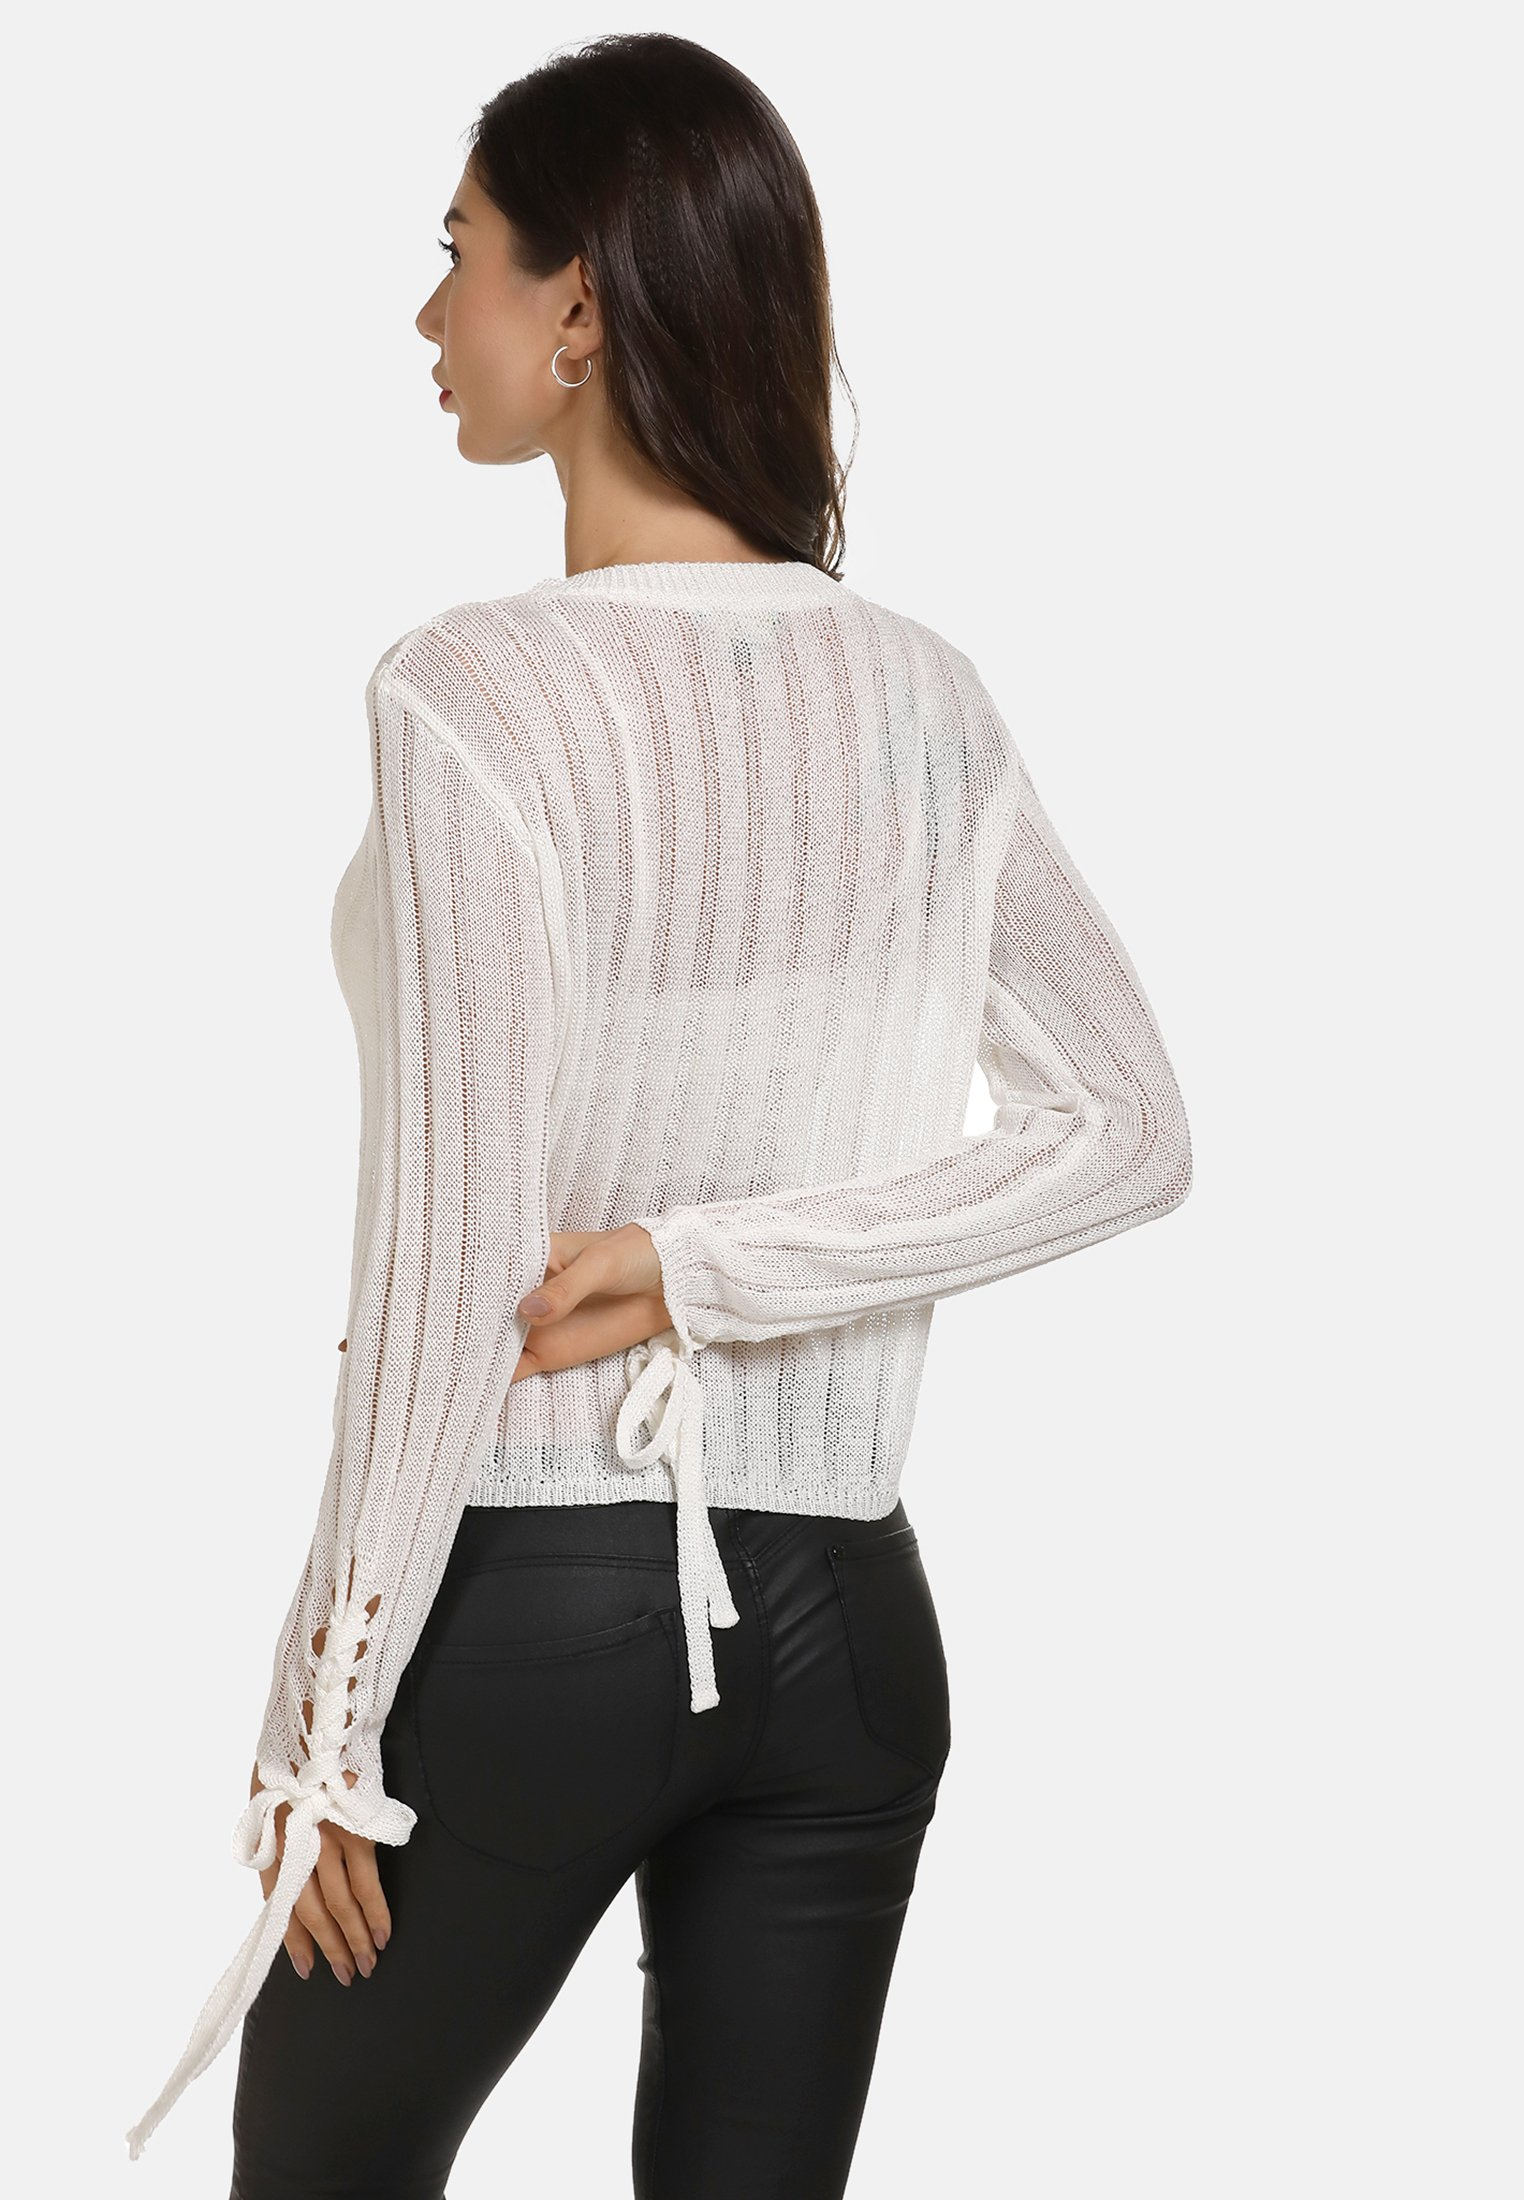 Up To Date Women's Clothing faina Jumper white qB0zEQy6C